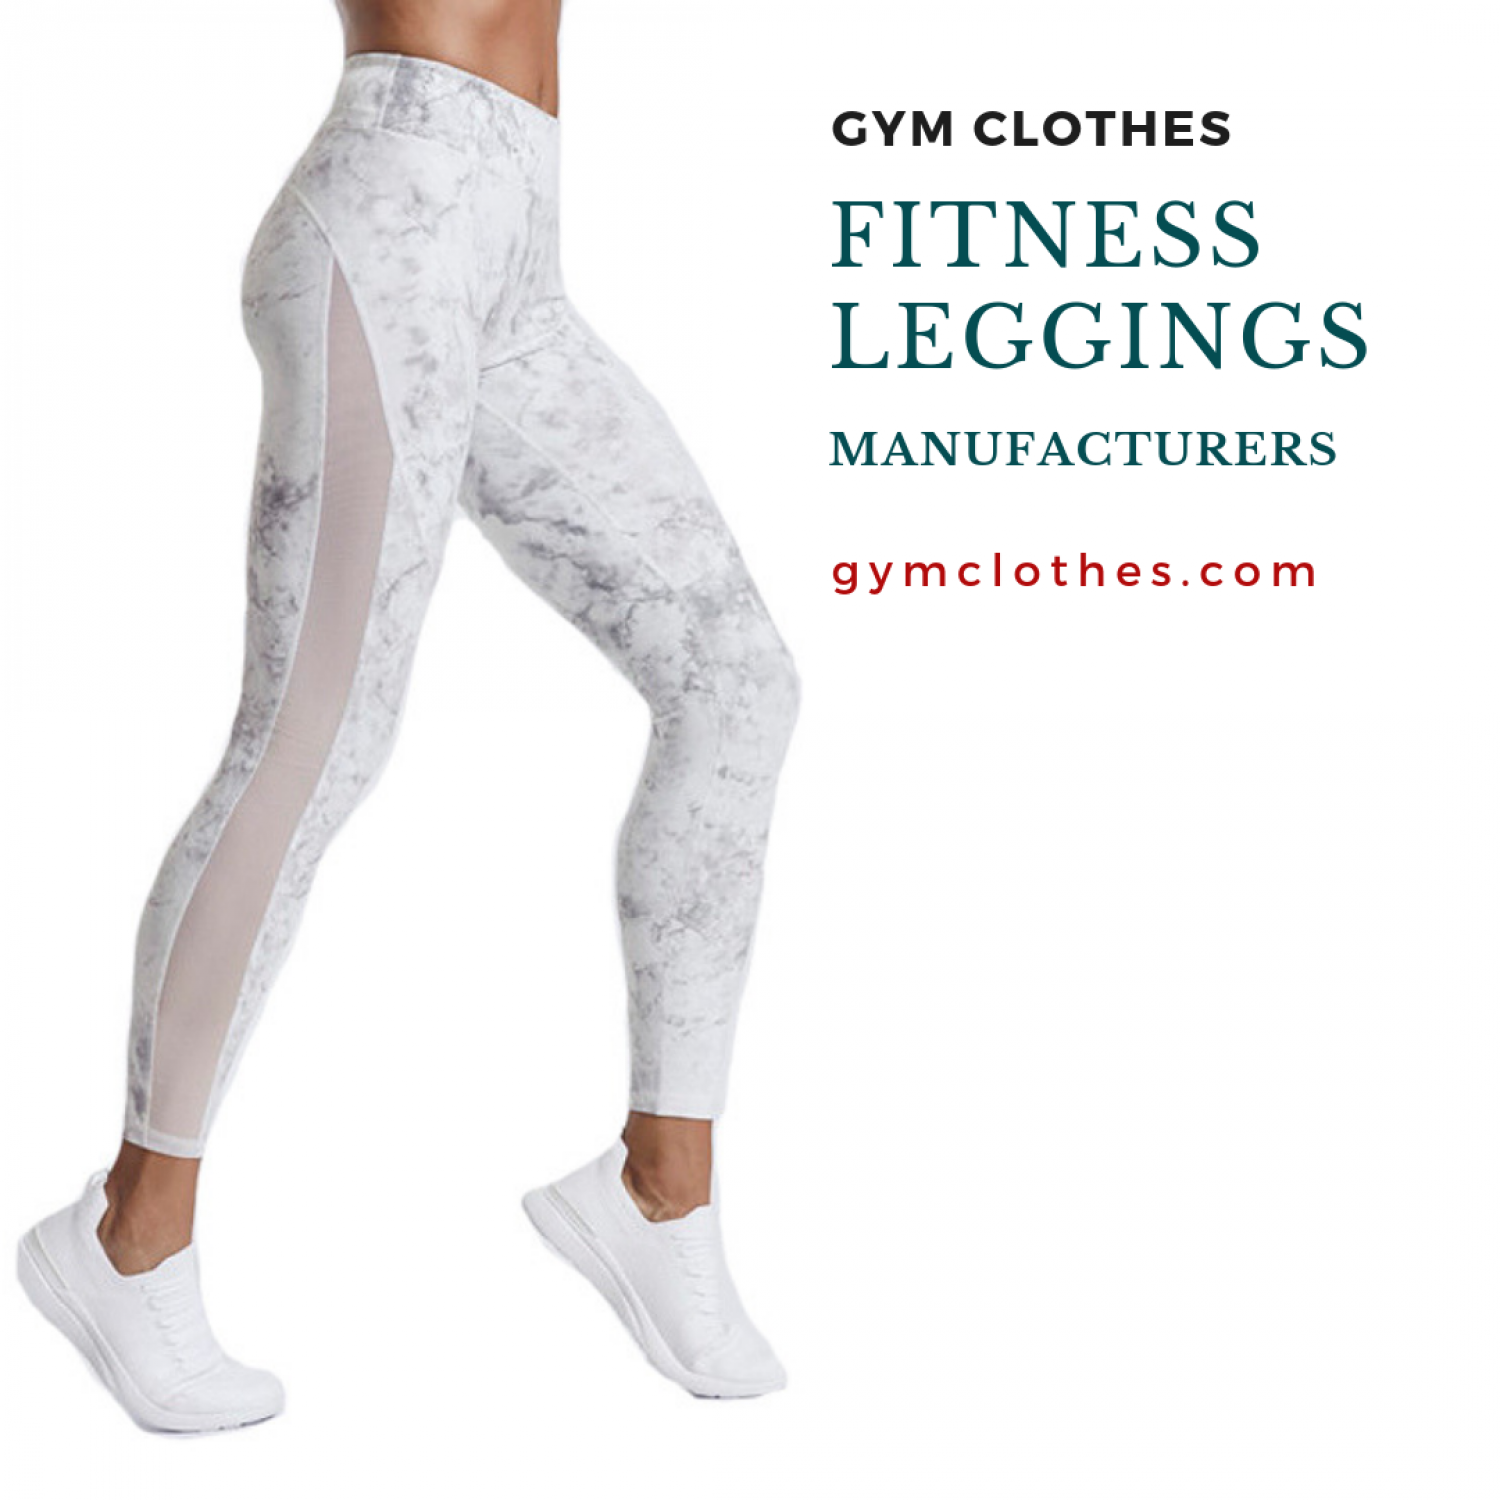 Gym Clothes Is Your Destination For Ordering Trendy Yoga Leggings Infographic